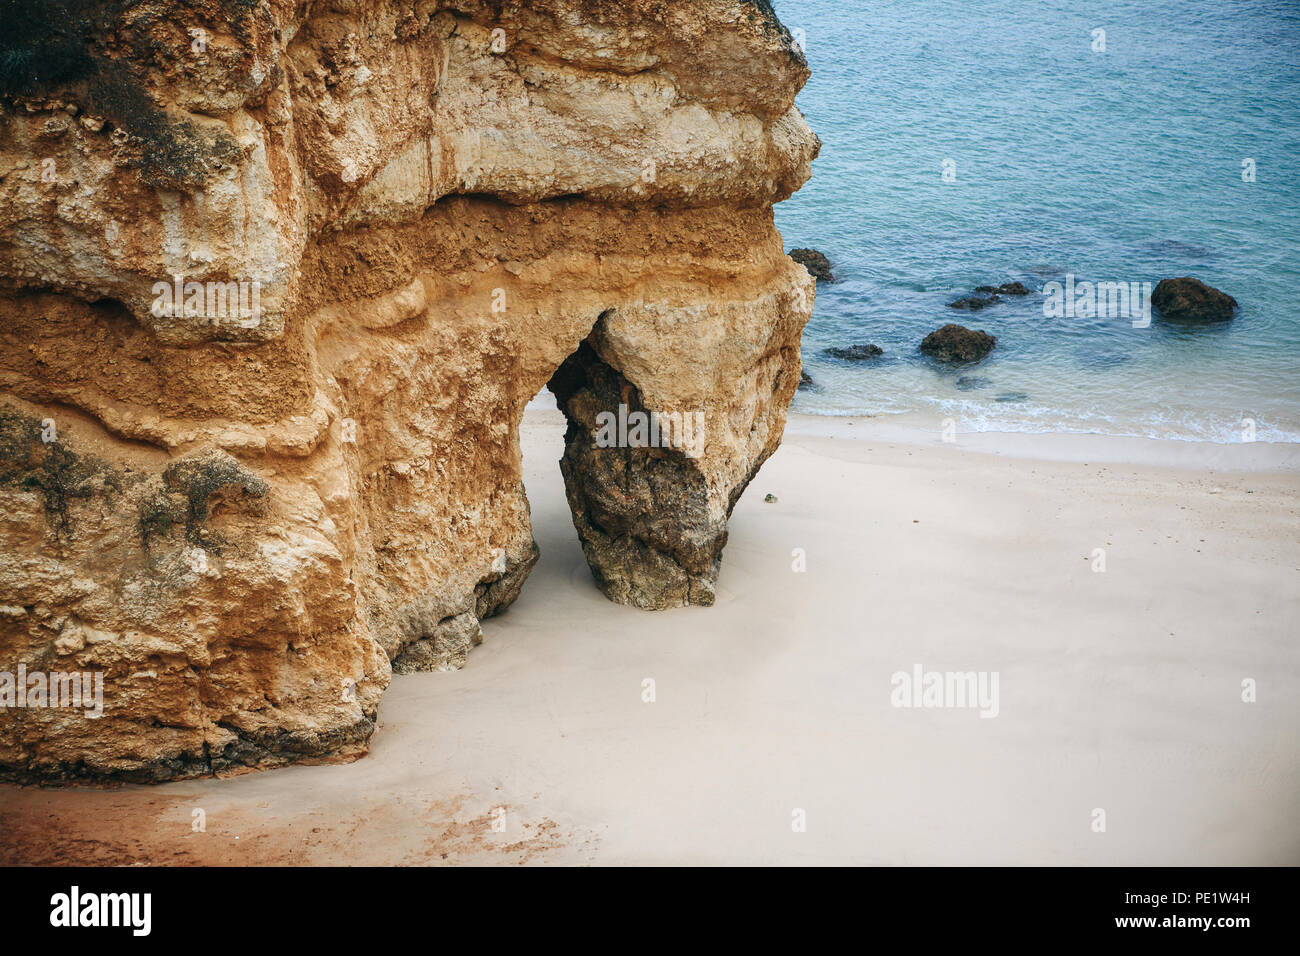 A rock with a crevice on the beach in the city called Lagos in Portugal. Near the Atlantic Ocean. - Stock Image